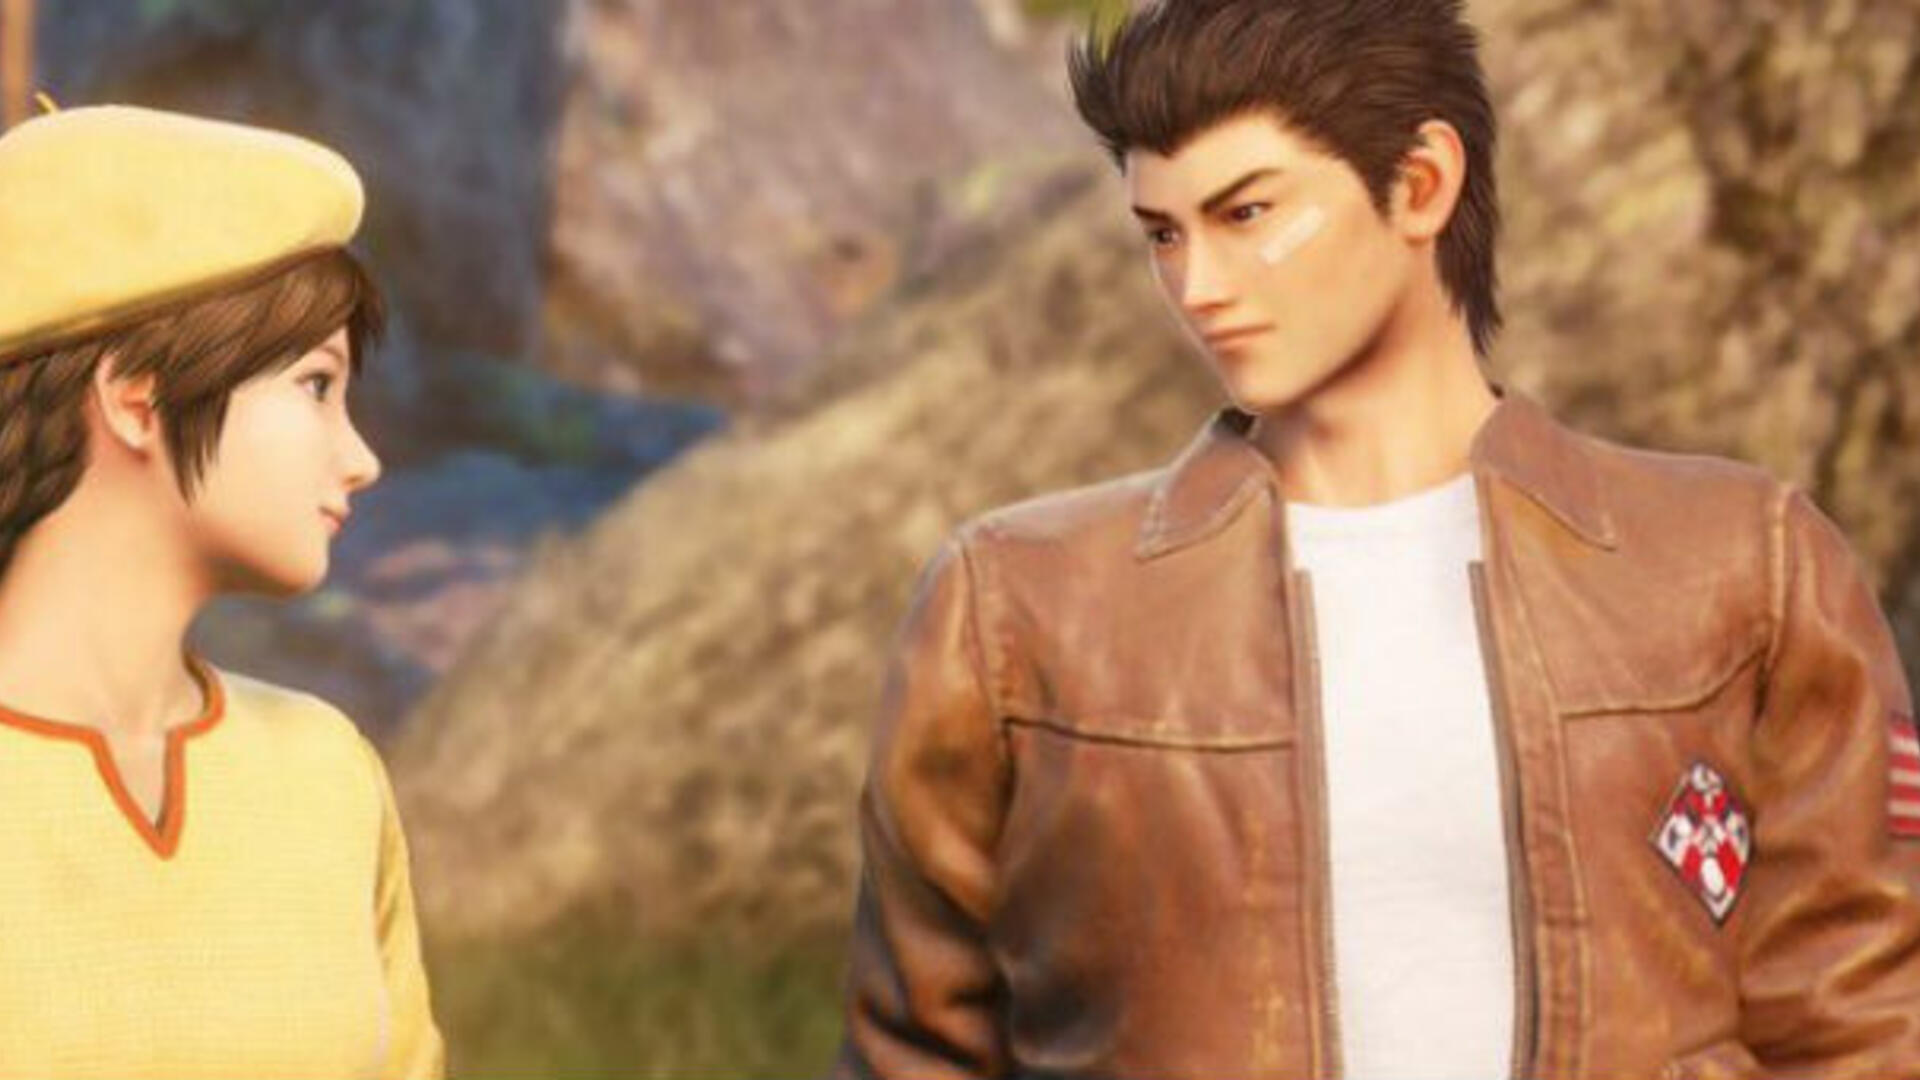 More Shenmue 3 Details to Be Revealed at an Anime Con Next Month